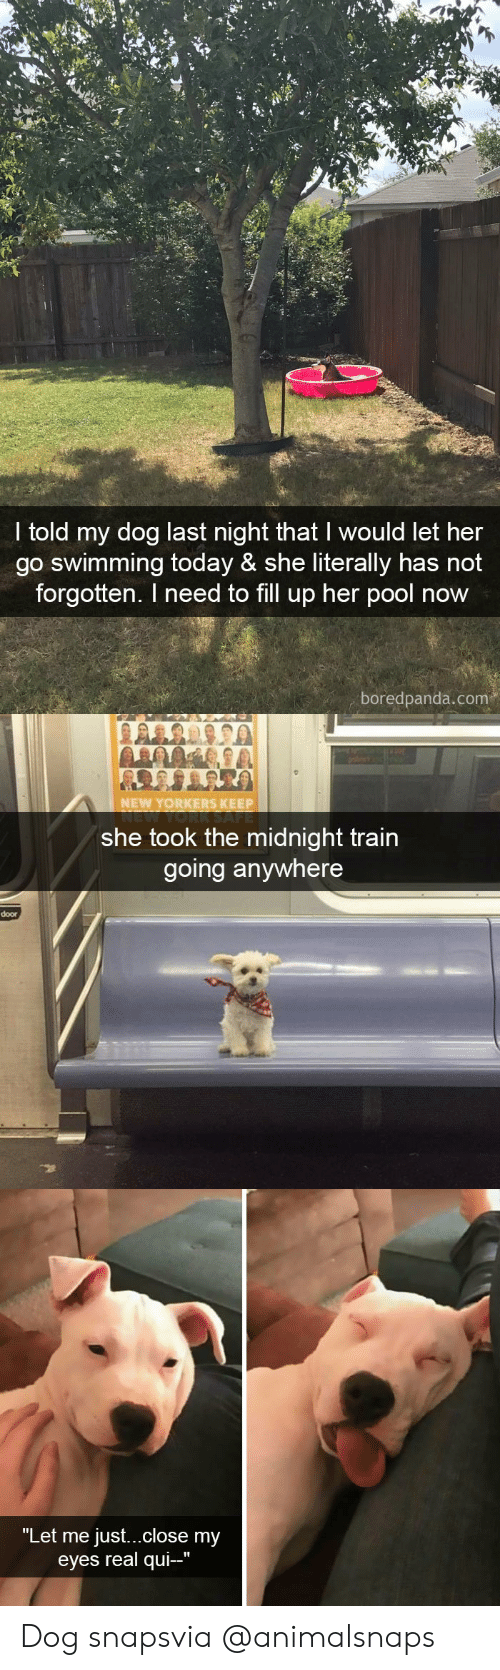 """qui: I told my dog last night that I would let her  go swimming today & she literally has not  forgotten. I need to fill up her pool now  boredpanda.com   NEW YORKERS KEEP  she took the midnight train  going anywhere  door   """"Let me just...close my  eyes real qui-"""" Dog snapsvia @animalsnaps"""